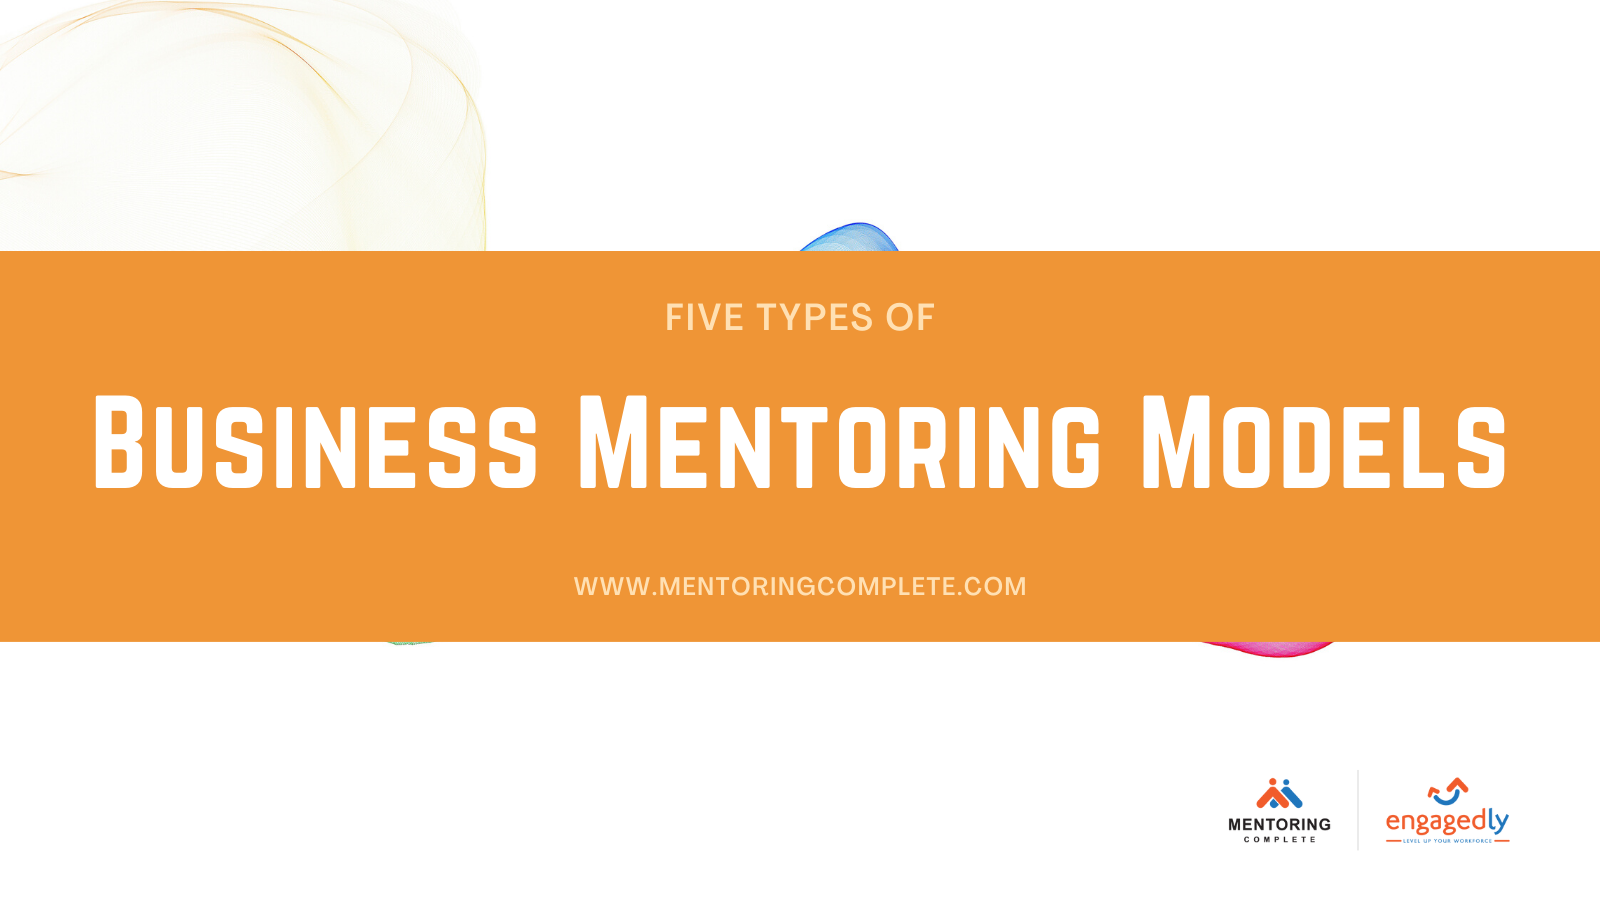 Different types of Business Mentoring models